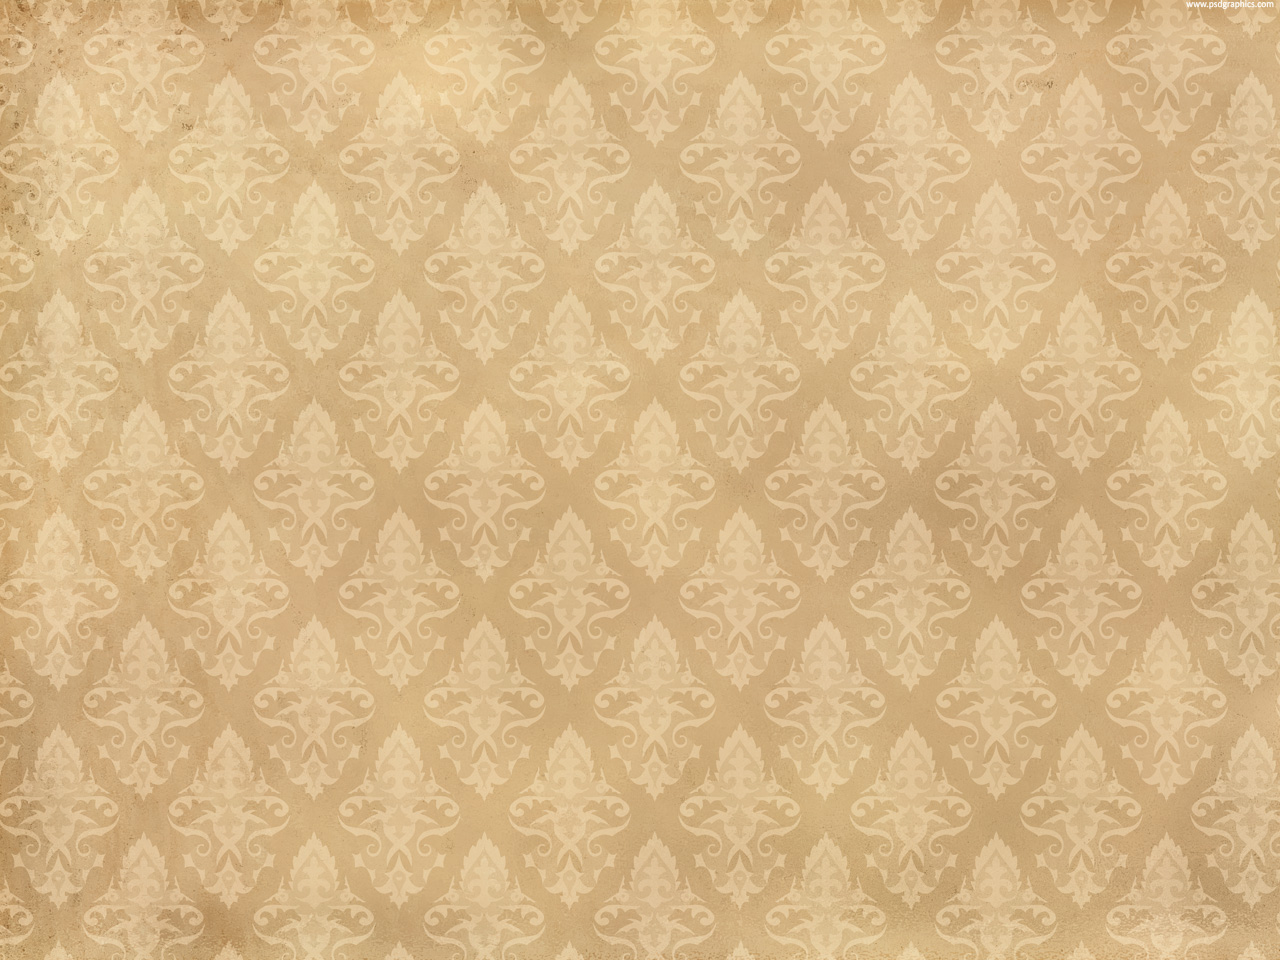 Brown vintage wallpaper psdgraphics for Retro images